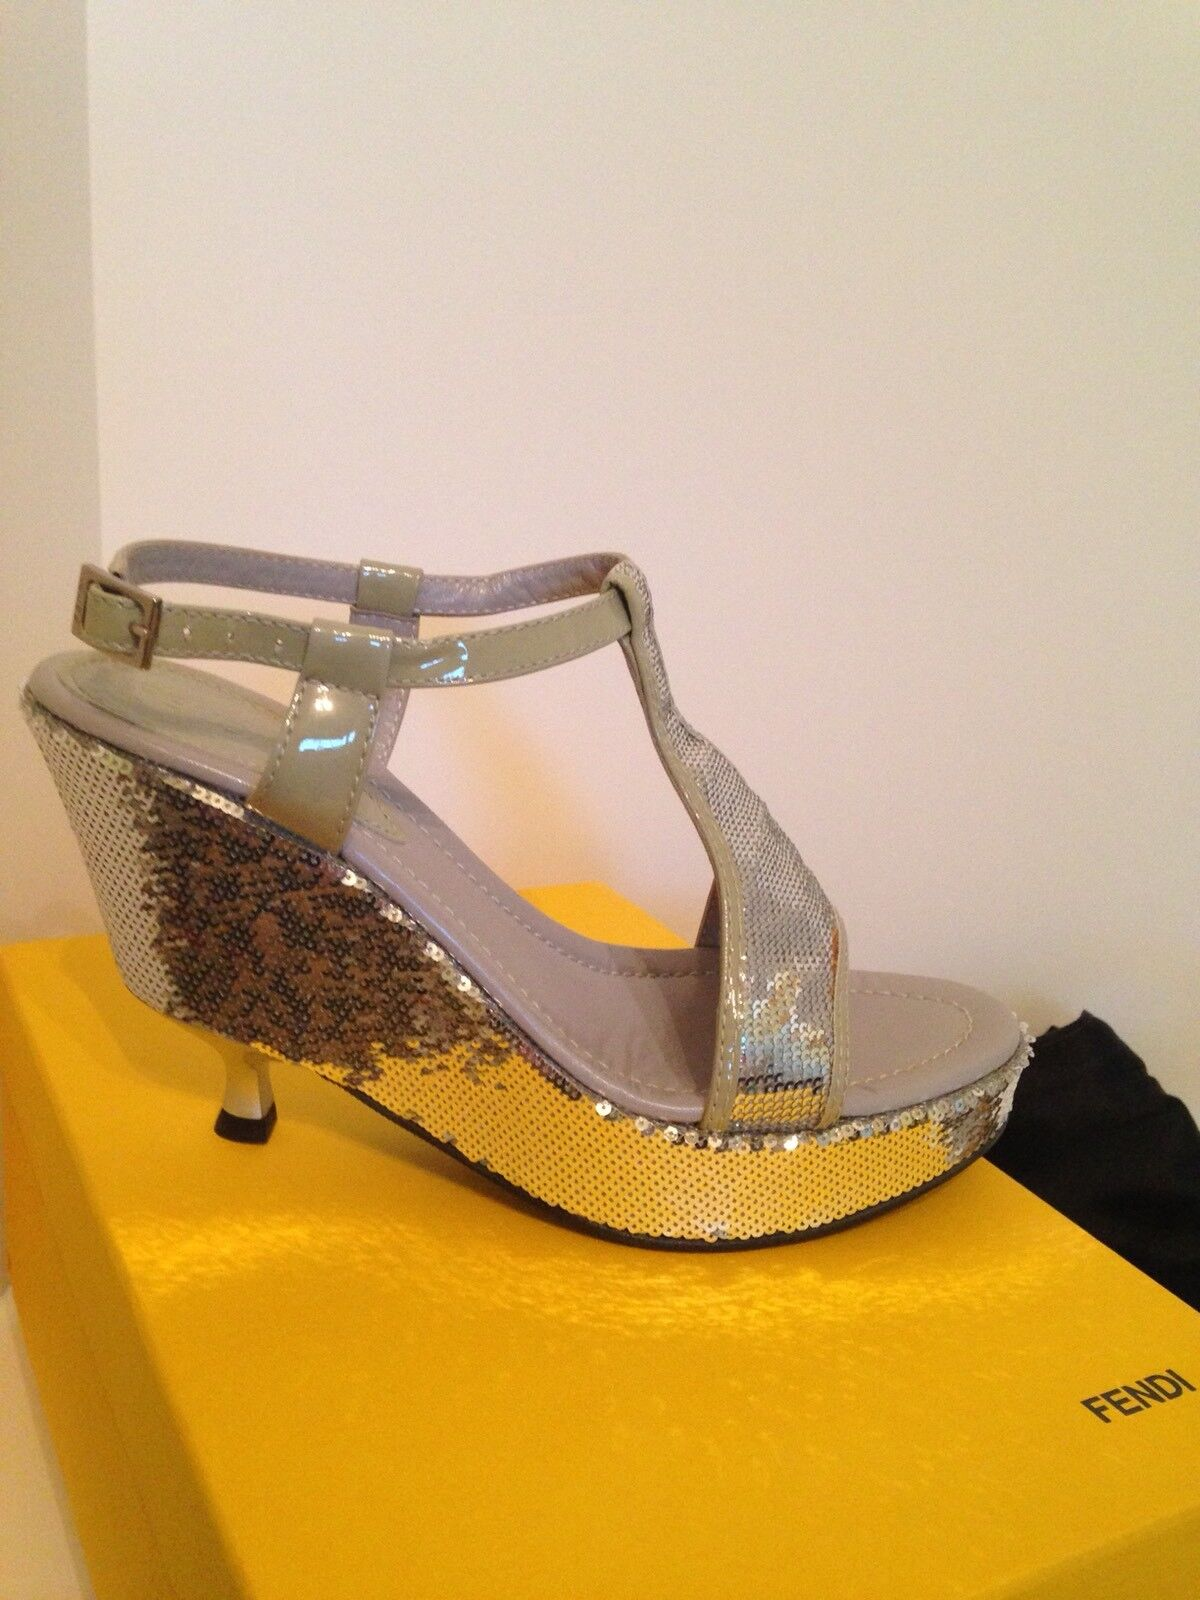 NIB 600 FENDI Sequent silver Platform Sandals Size 8.5